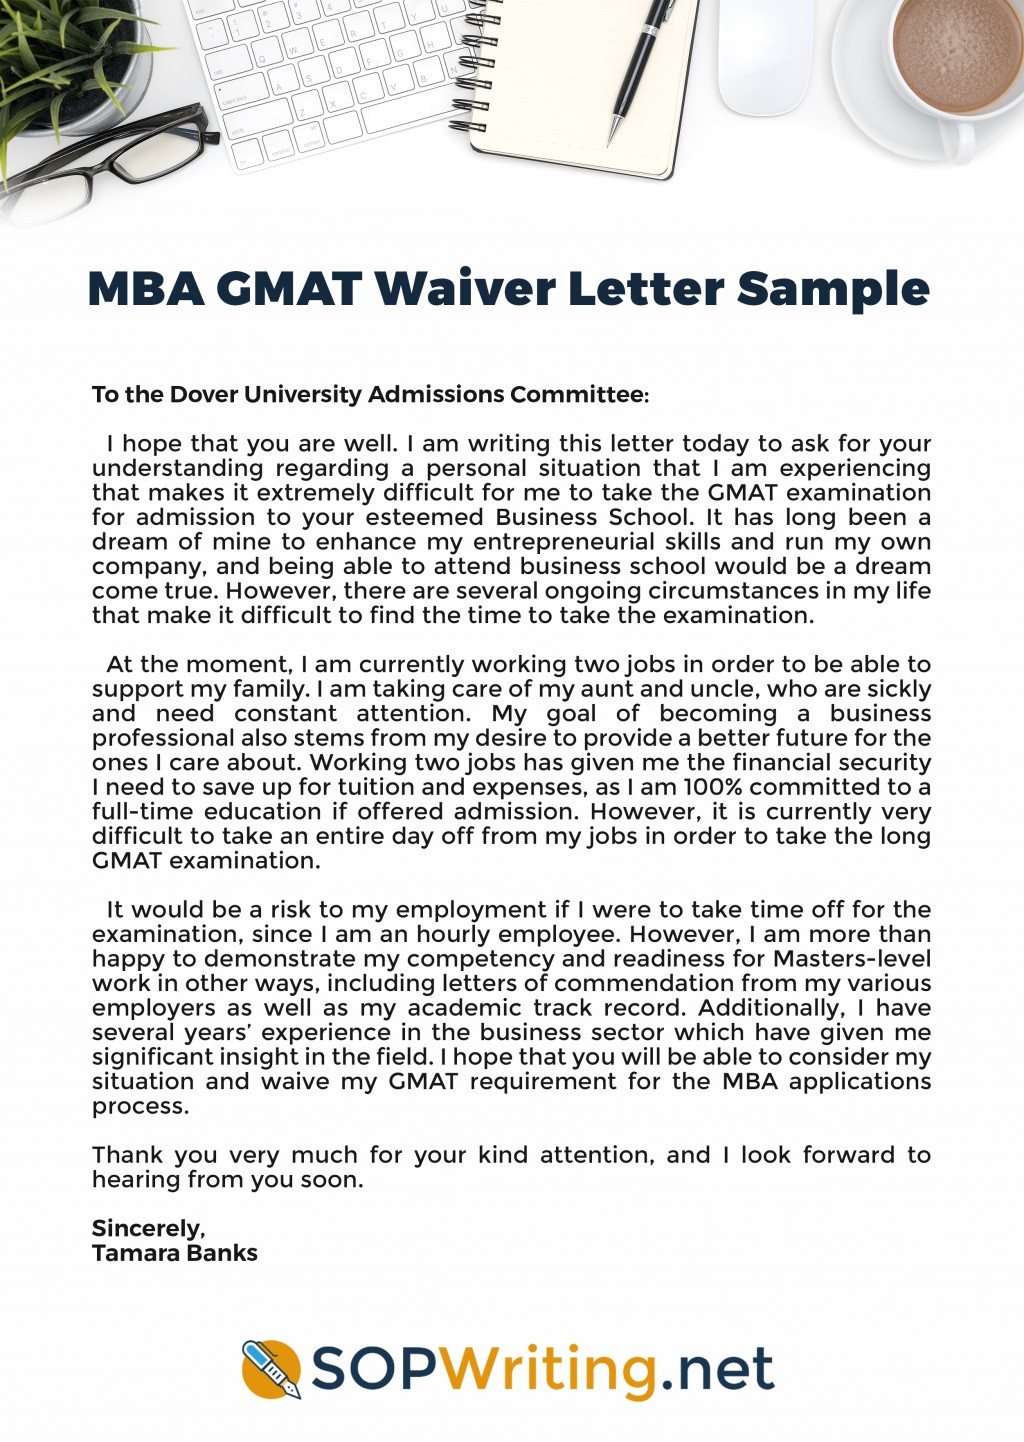 029 Mba Gmat Waiver Letter Sample Essay Shocking Topics Awa Essays Free Download Large